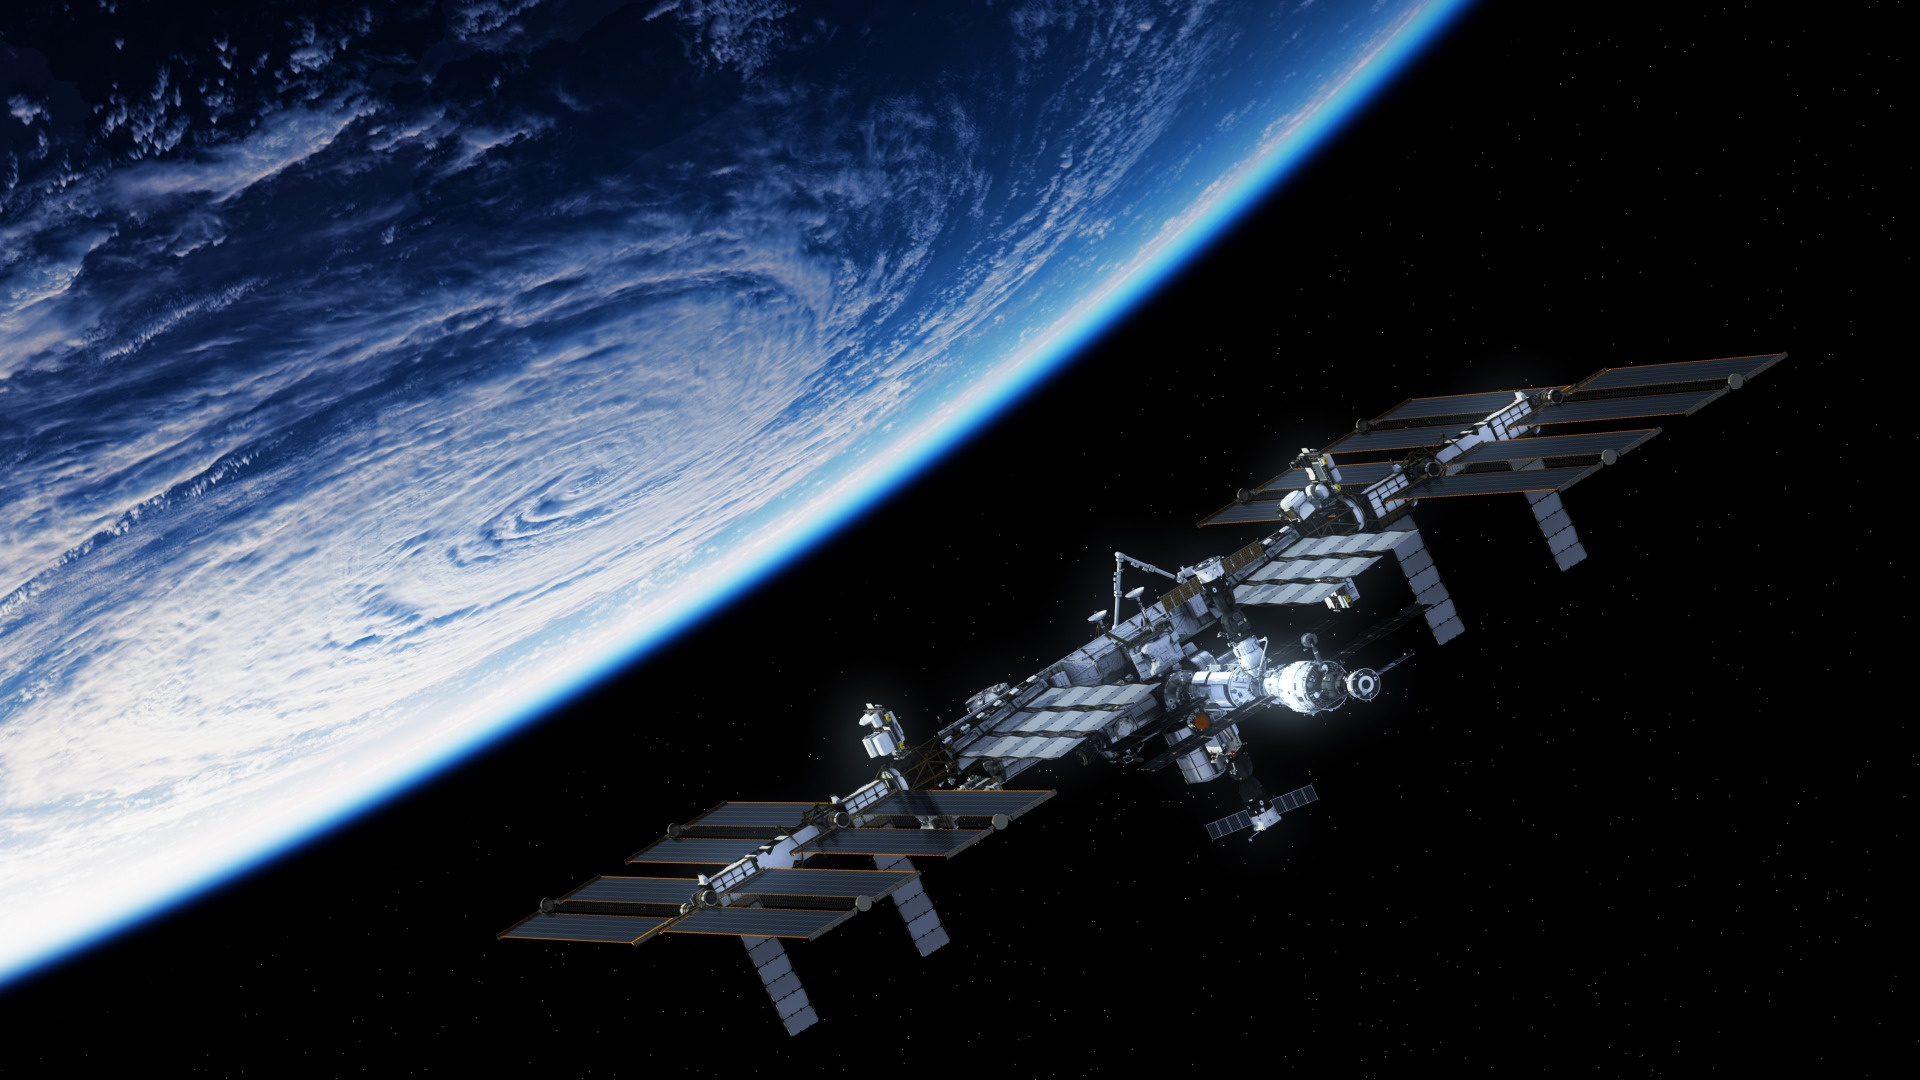 Space Station free wallpaper